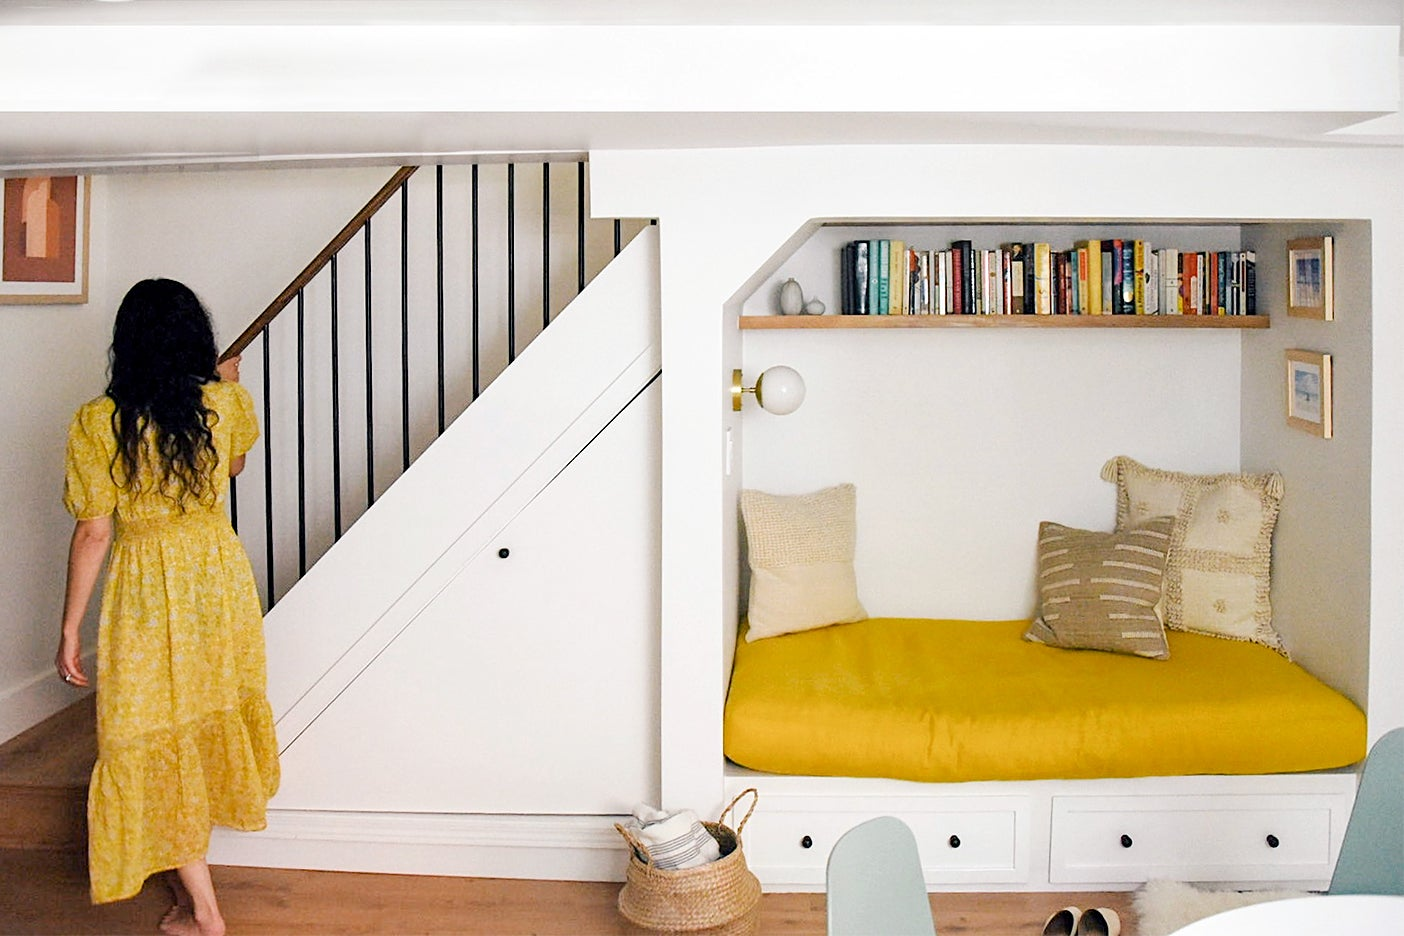 How This Laminate-Clad Basement Went From Eyesore to Bright Family Hangout